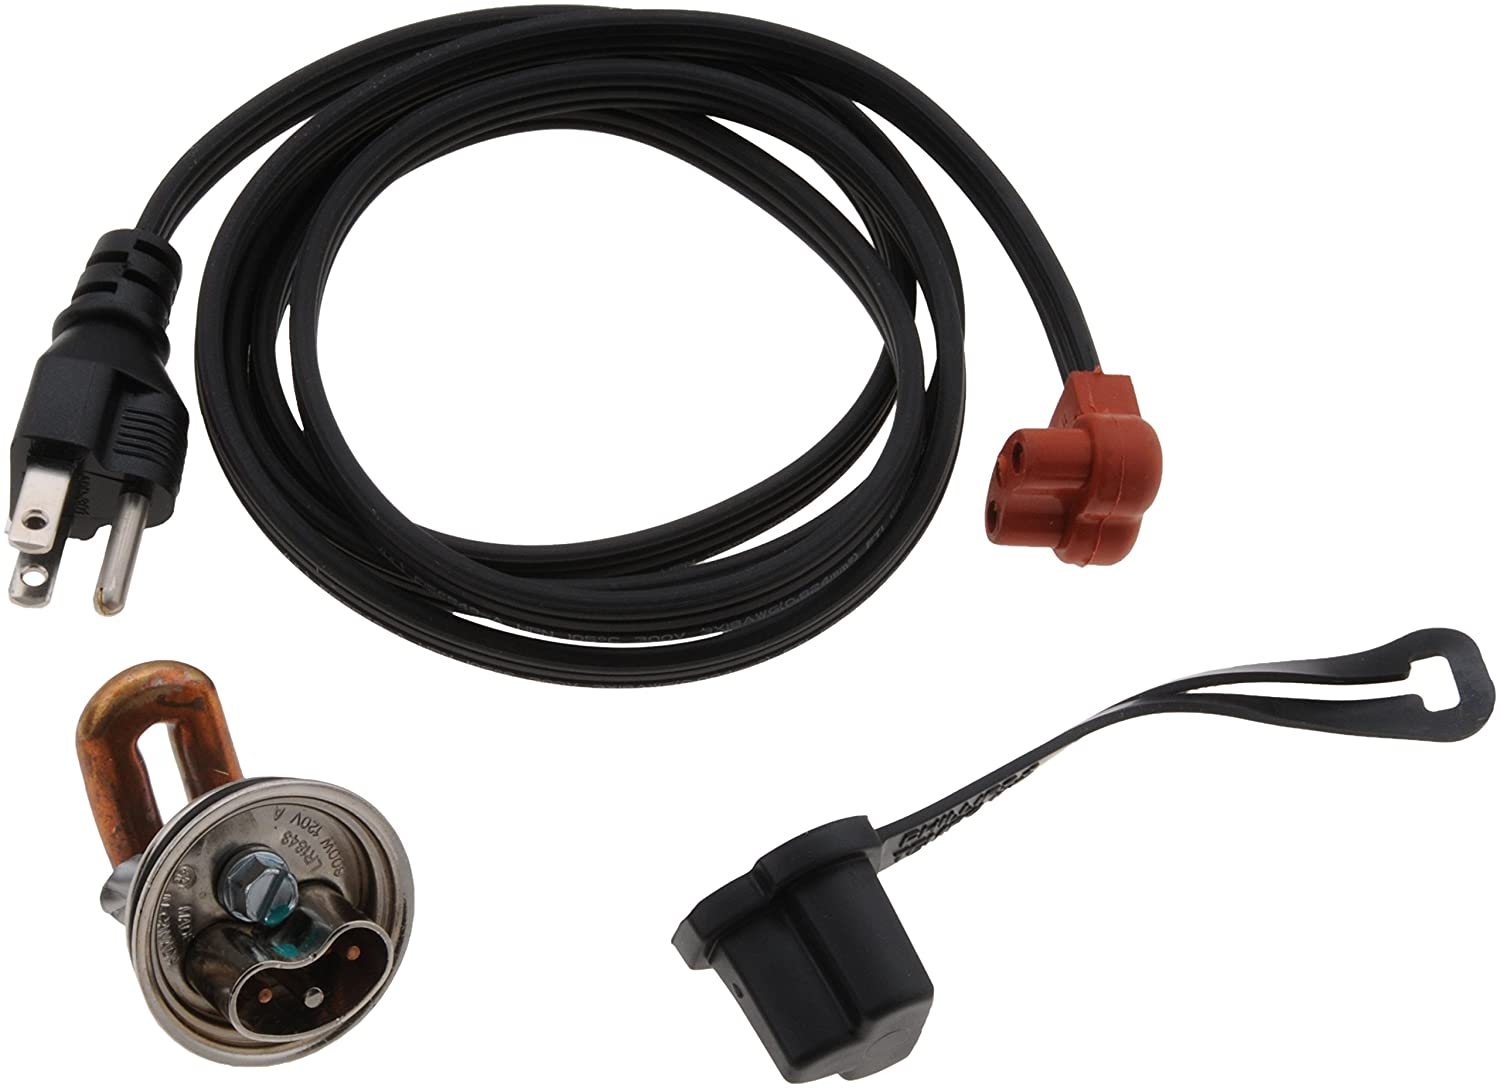 Cadillac Jeep International by Navistar 1-1//2-Inch Diameter 120 Volts Lincoln 600 Watts CSA Approved Ford Zerostart 3100039 Engine Block Heater for Buick Chevrolet Mazda